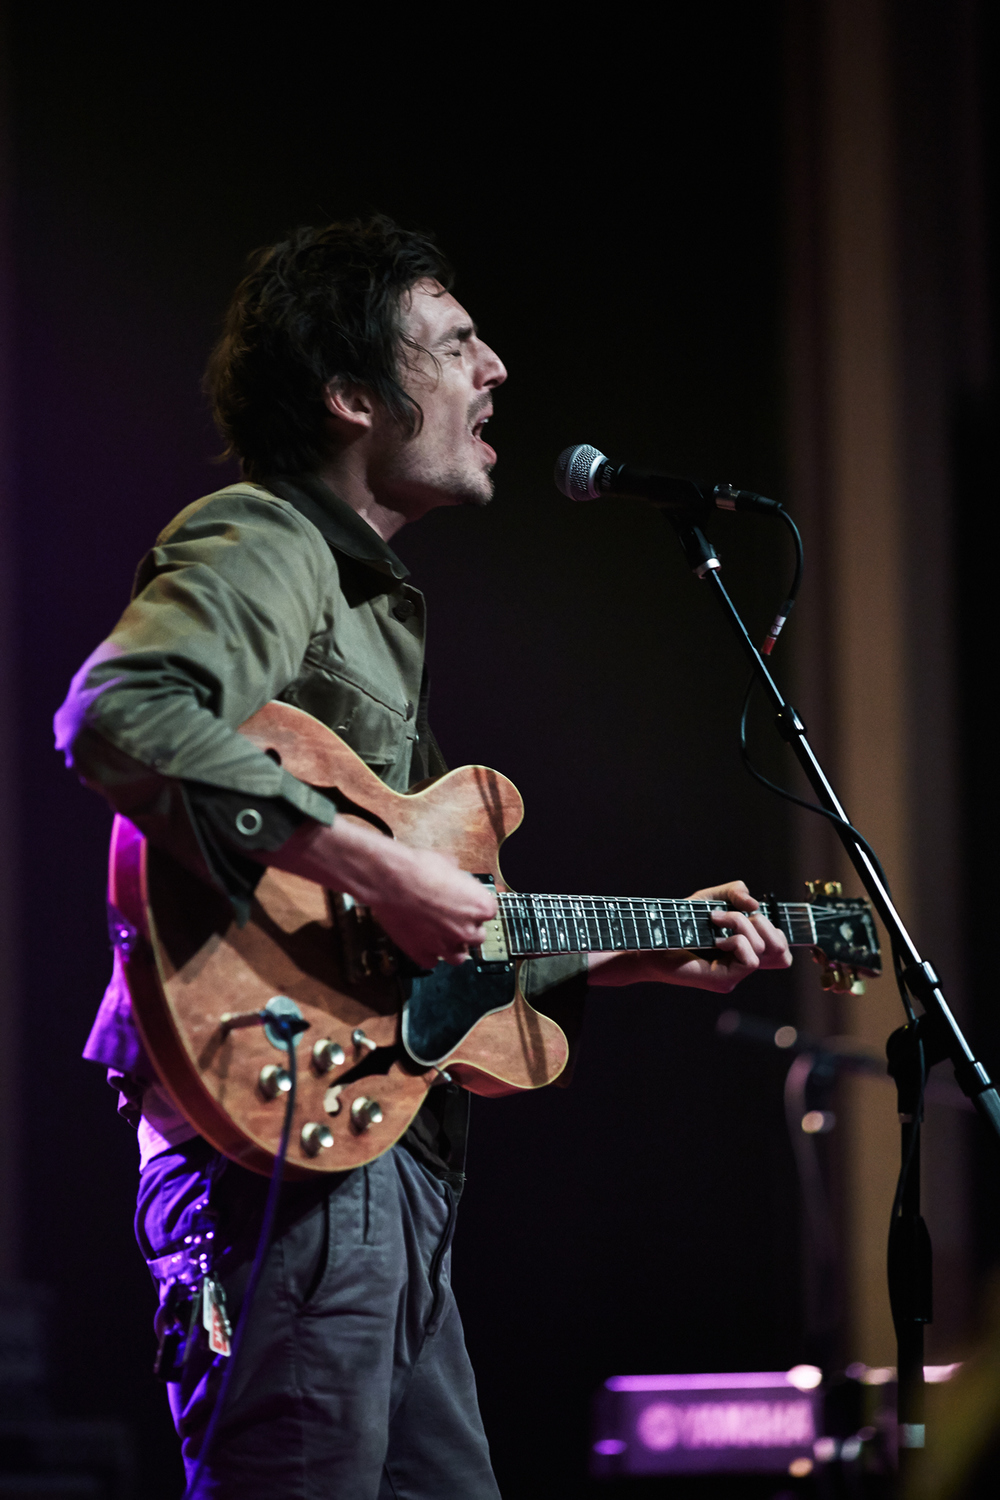 Augustana_At_The_Varsity_Theater_Minneapolis_2014_Photo_By_Joe_Lemke_11.JPG